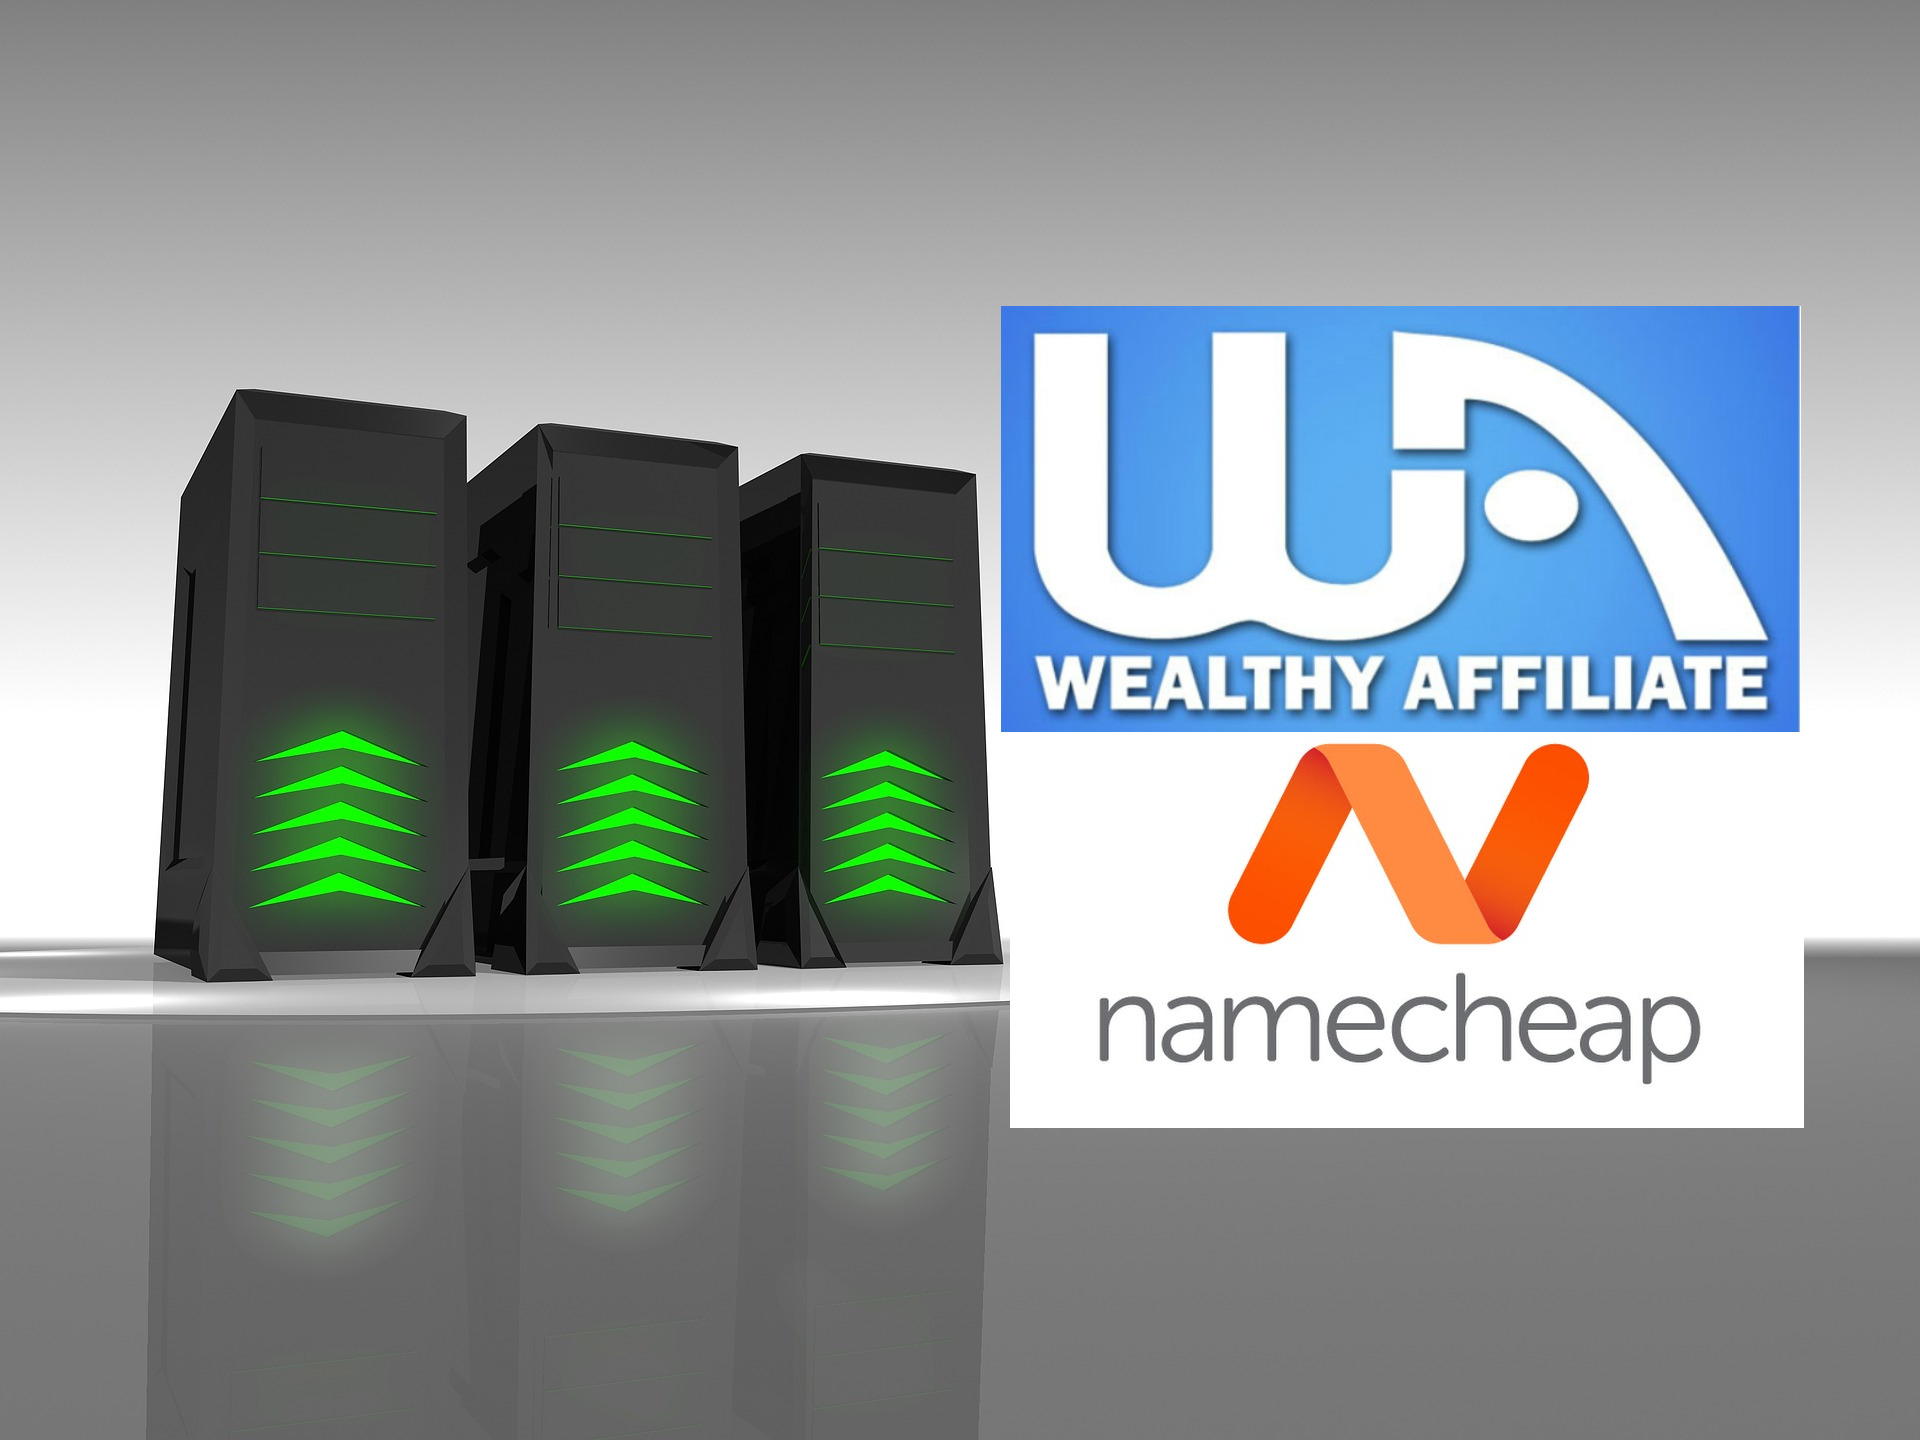 Wealthy Affiliate and Namecheap Logos